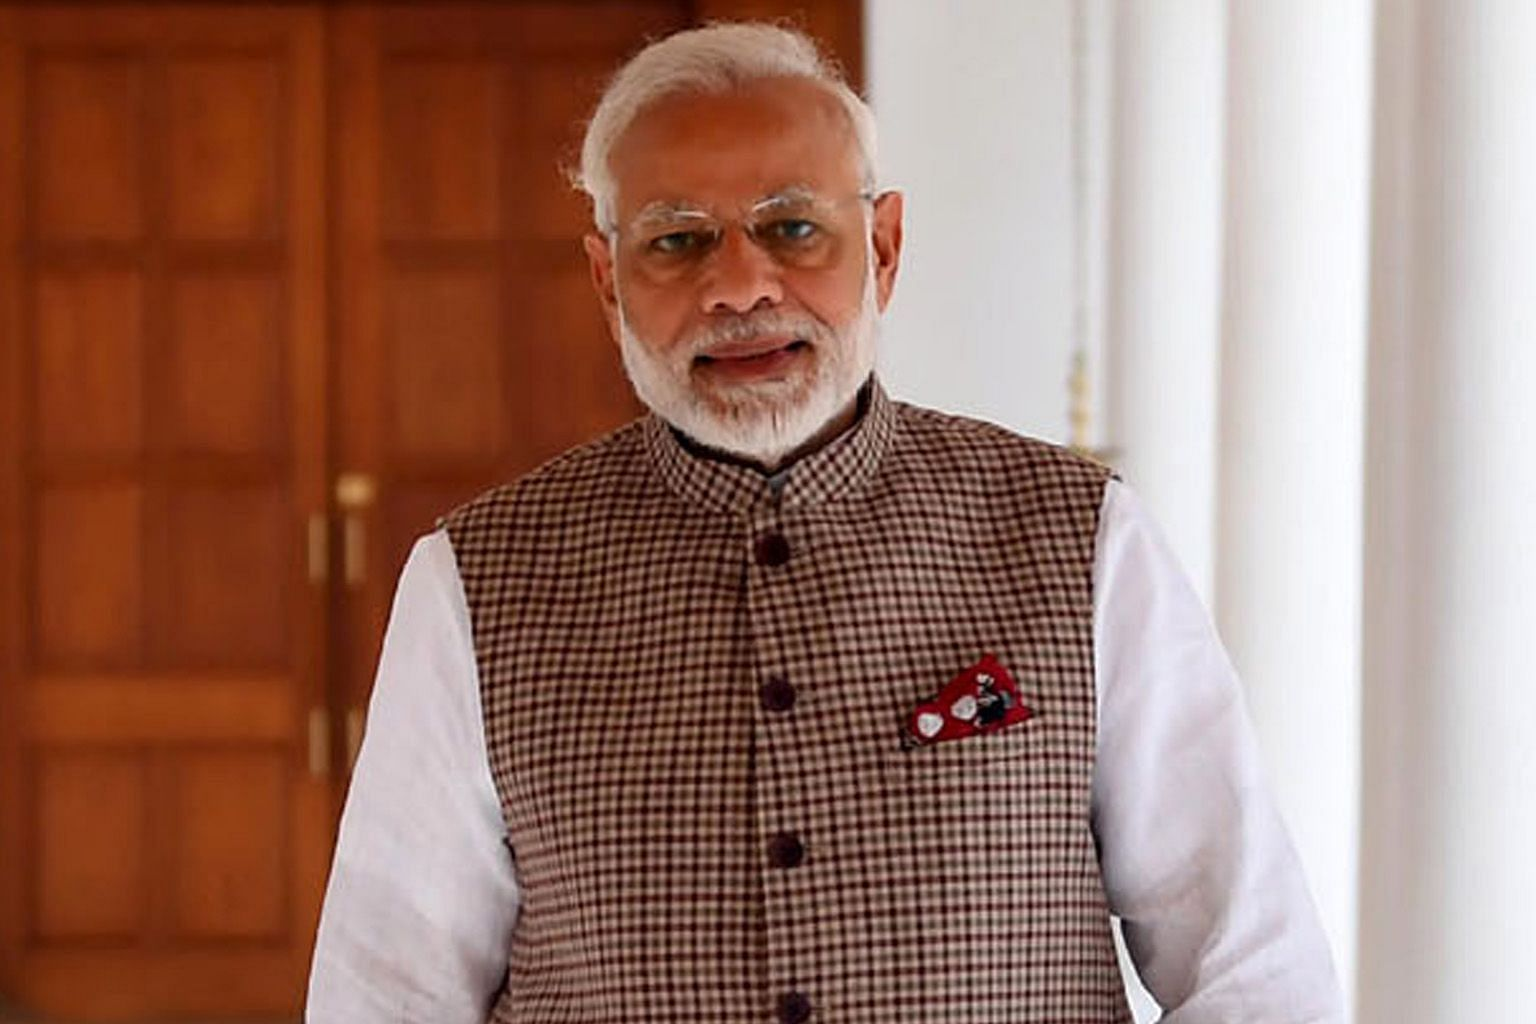 Indian Prime Minister Narendra Modi (far left) wears the jacket in various colours. His is cut longer and in a comfortable fit. The country's first prime minister, Jawaharlal Nehru, wore the jacket in more muted colours. South Korean President Moon J